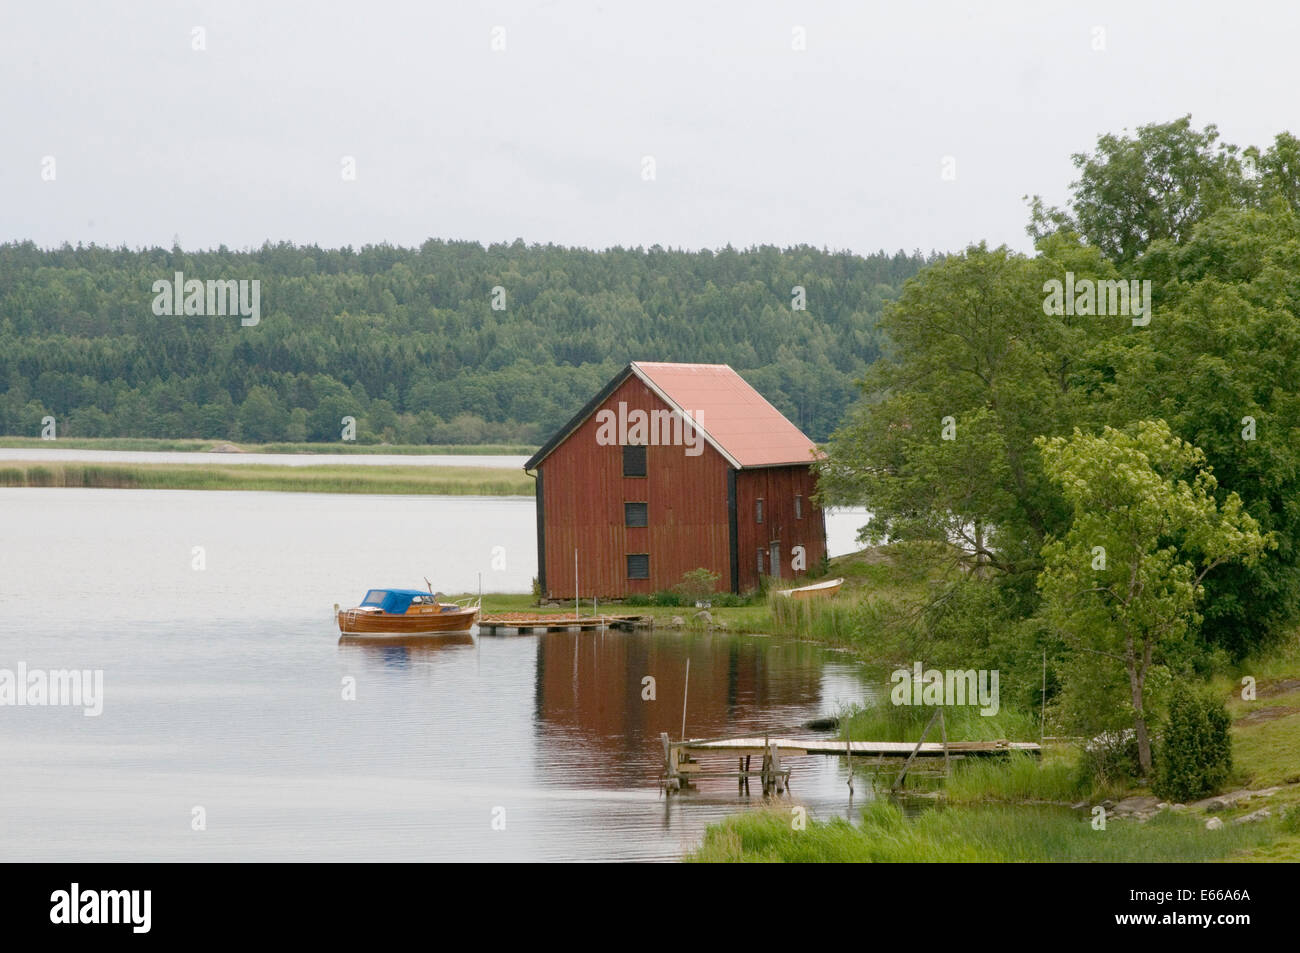 schwedischen see seen schweden boot haus rot falun farbe stockfoto bild 72669138 alamy. Black Bedroom Furniture Sets. Home Design Ideas